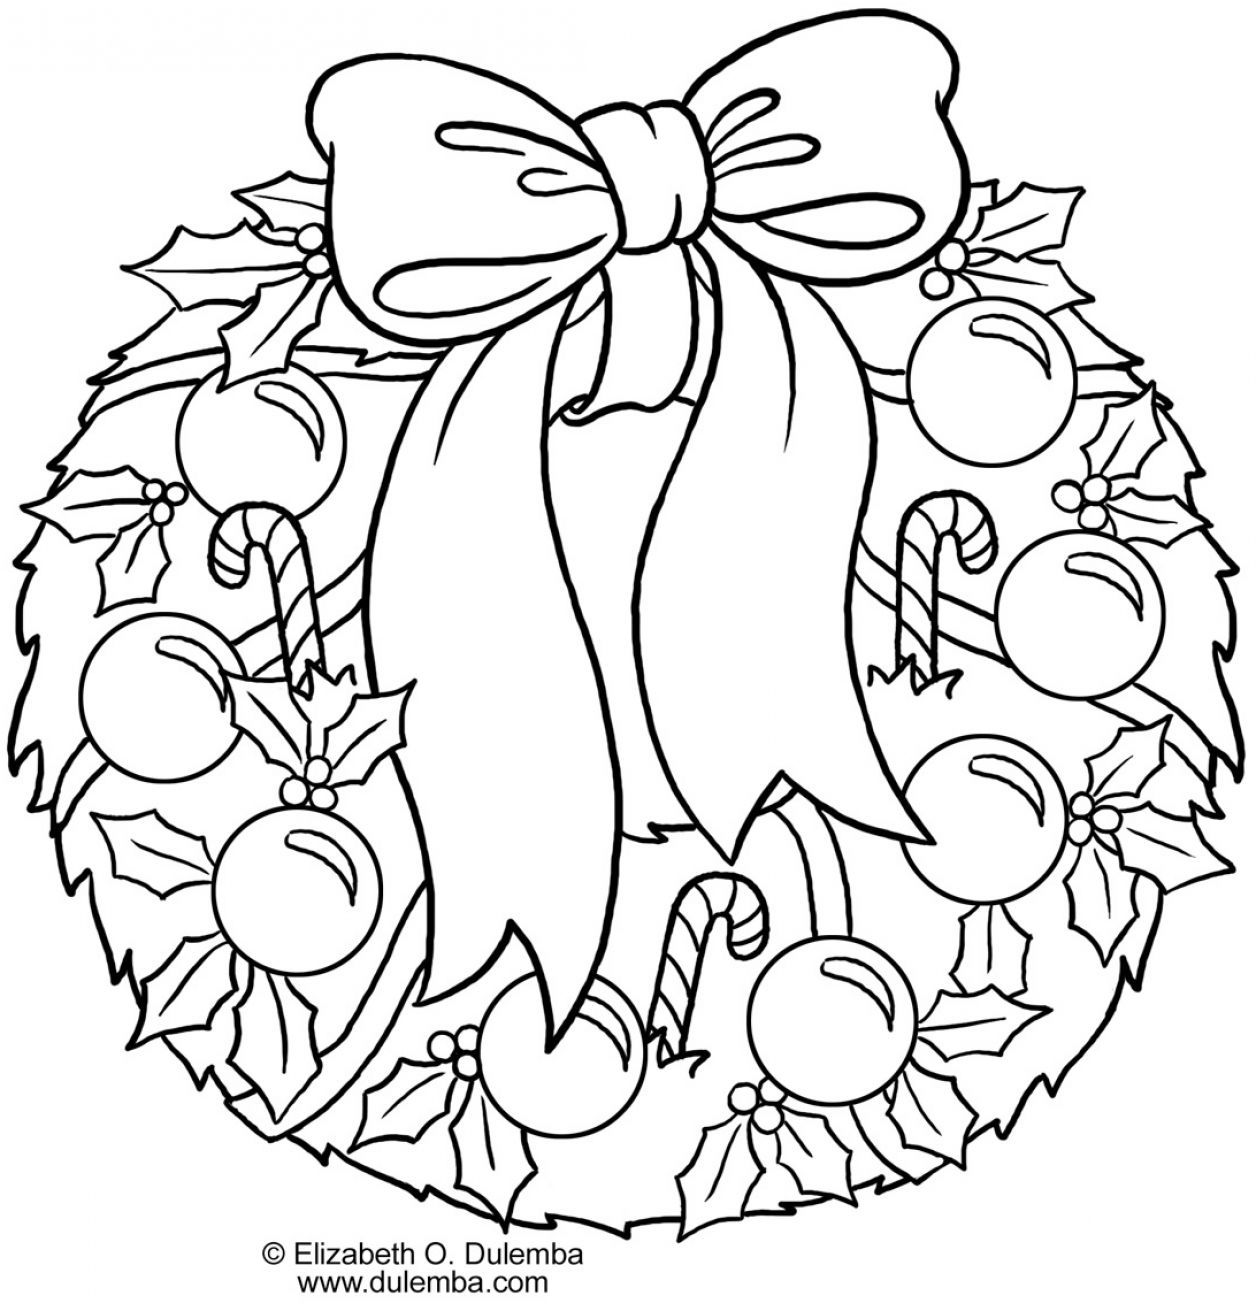 Diy bird food wreaths dog decorated wreaths  COLORING PAGES